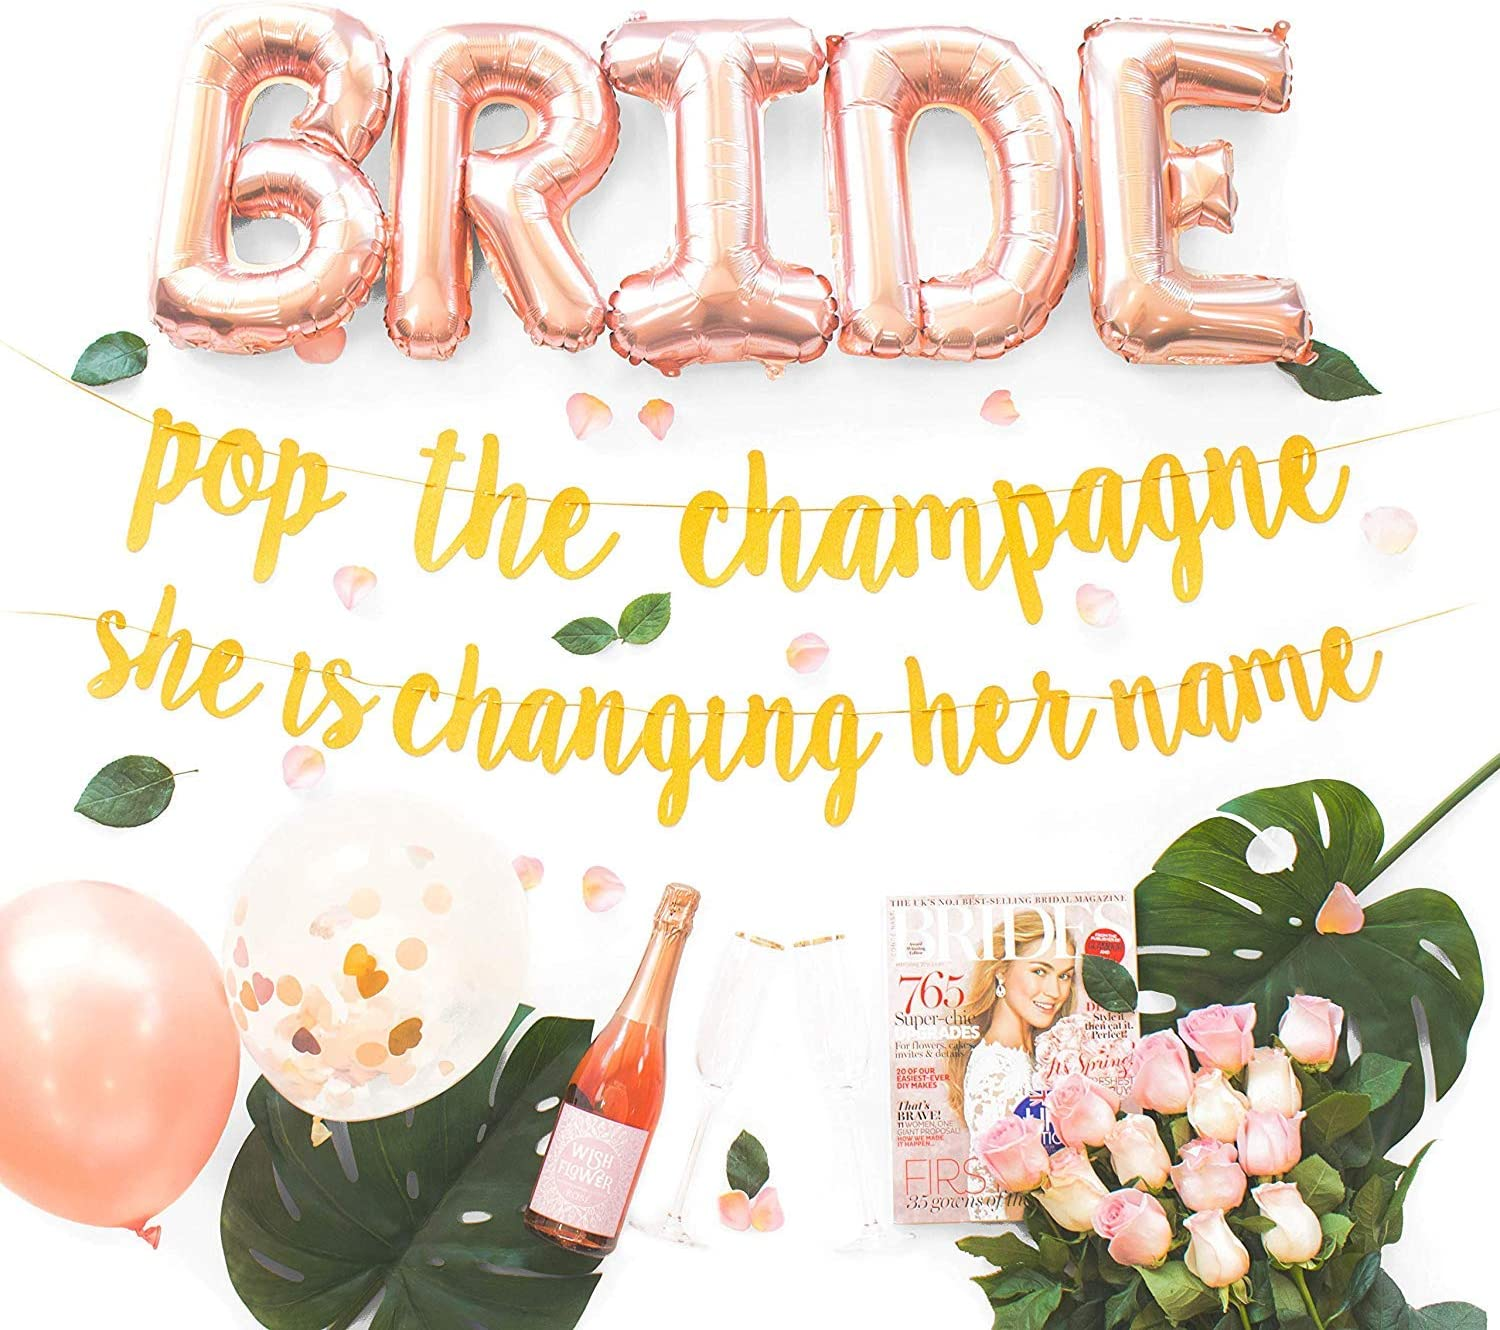 Amazon Com Bachelorette Party Decorations Kit Bridal Shower Supplies Bride To Be Sash Ring Foil Rose Balloons Glitter Banner Pop The Champagne She Is Changing Her Name Gold Arts Crafts